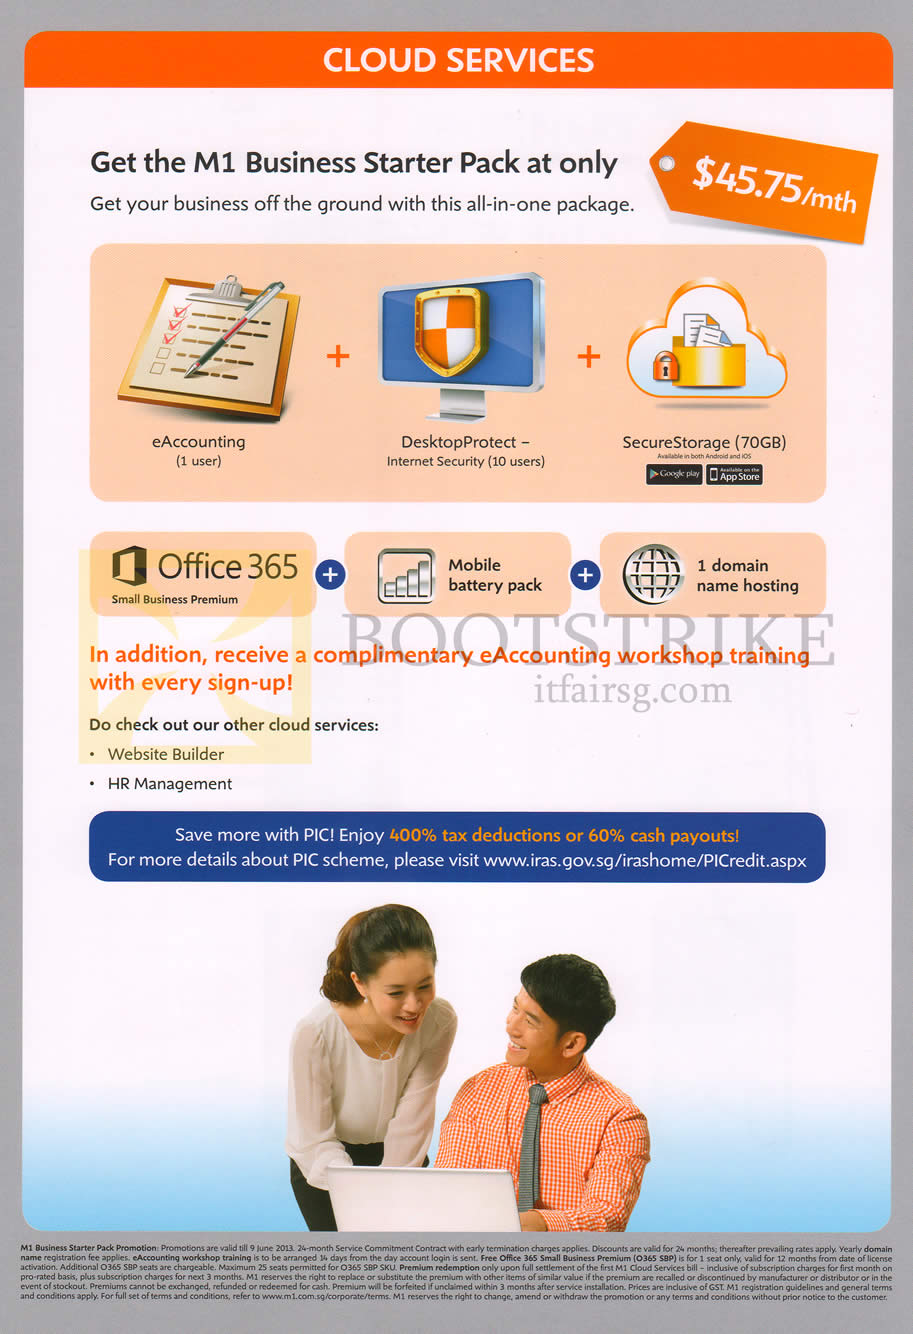 PC SHOW 2013 price list image brochure of M1 Business Cloud Services Business Starter Pack, Office 365